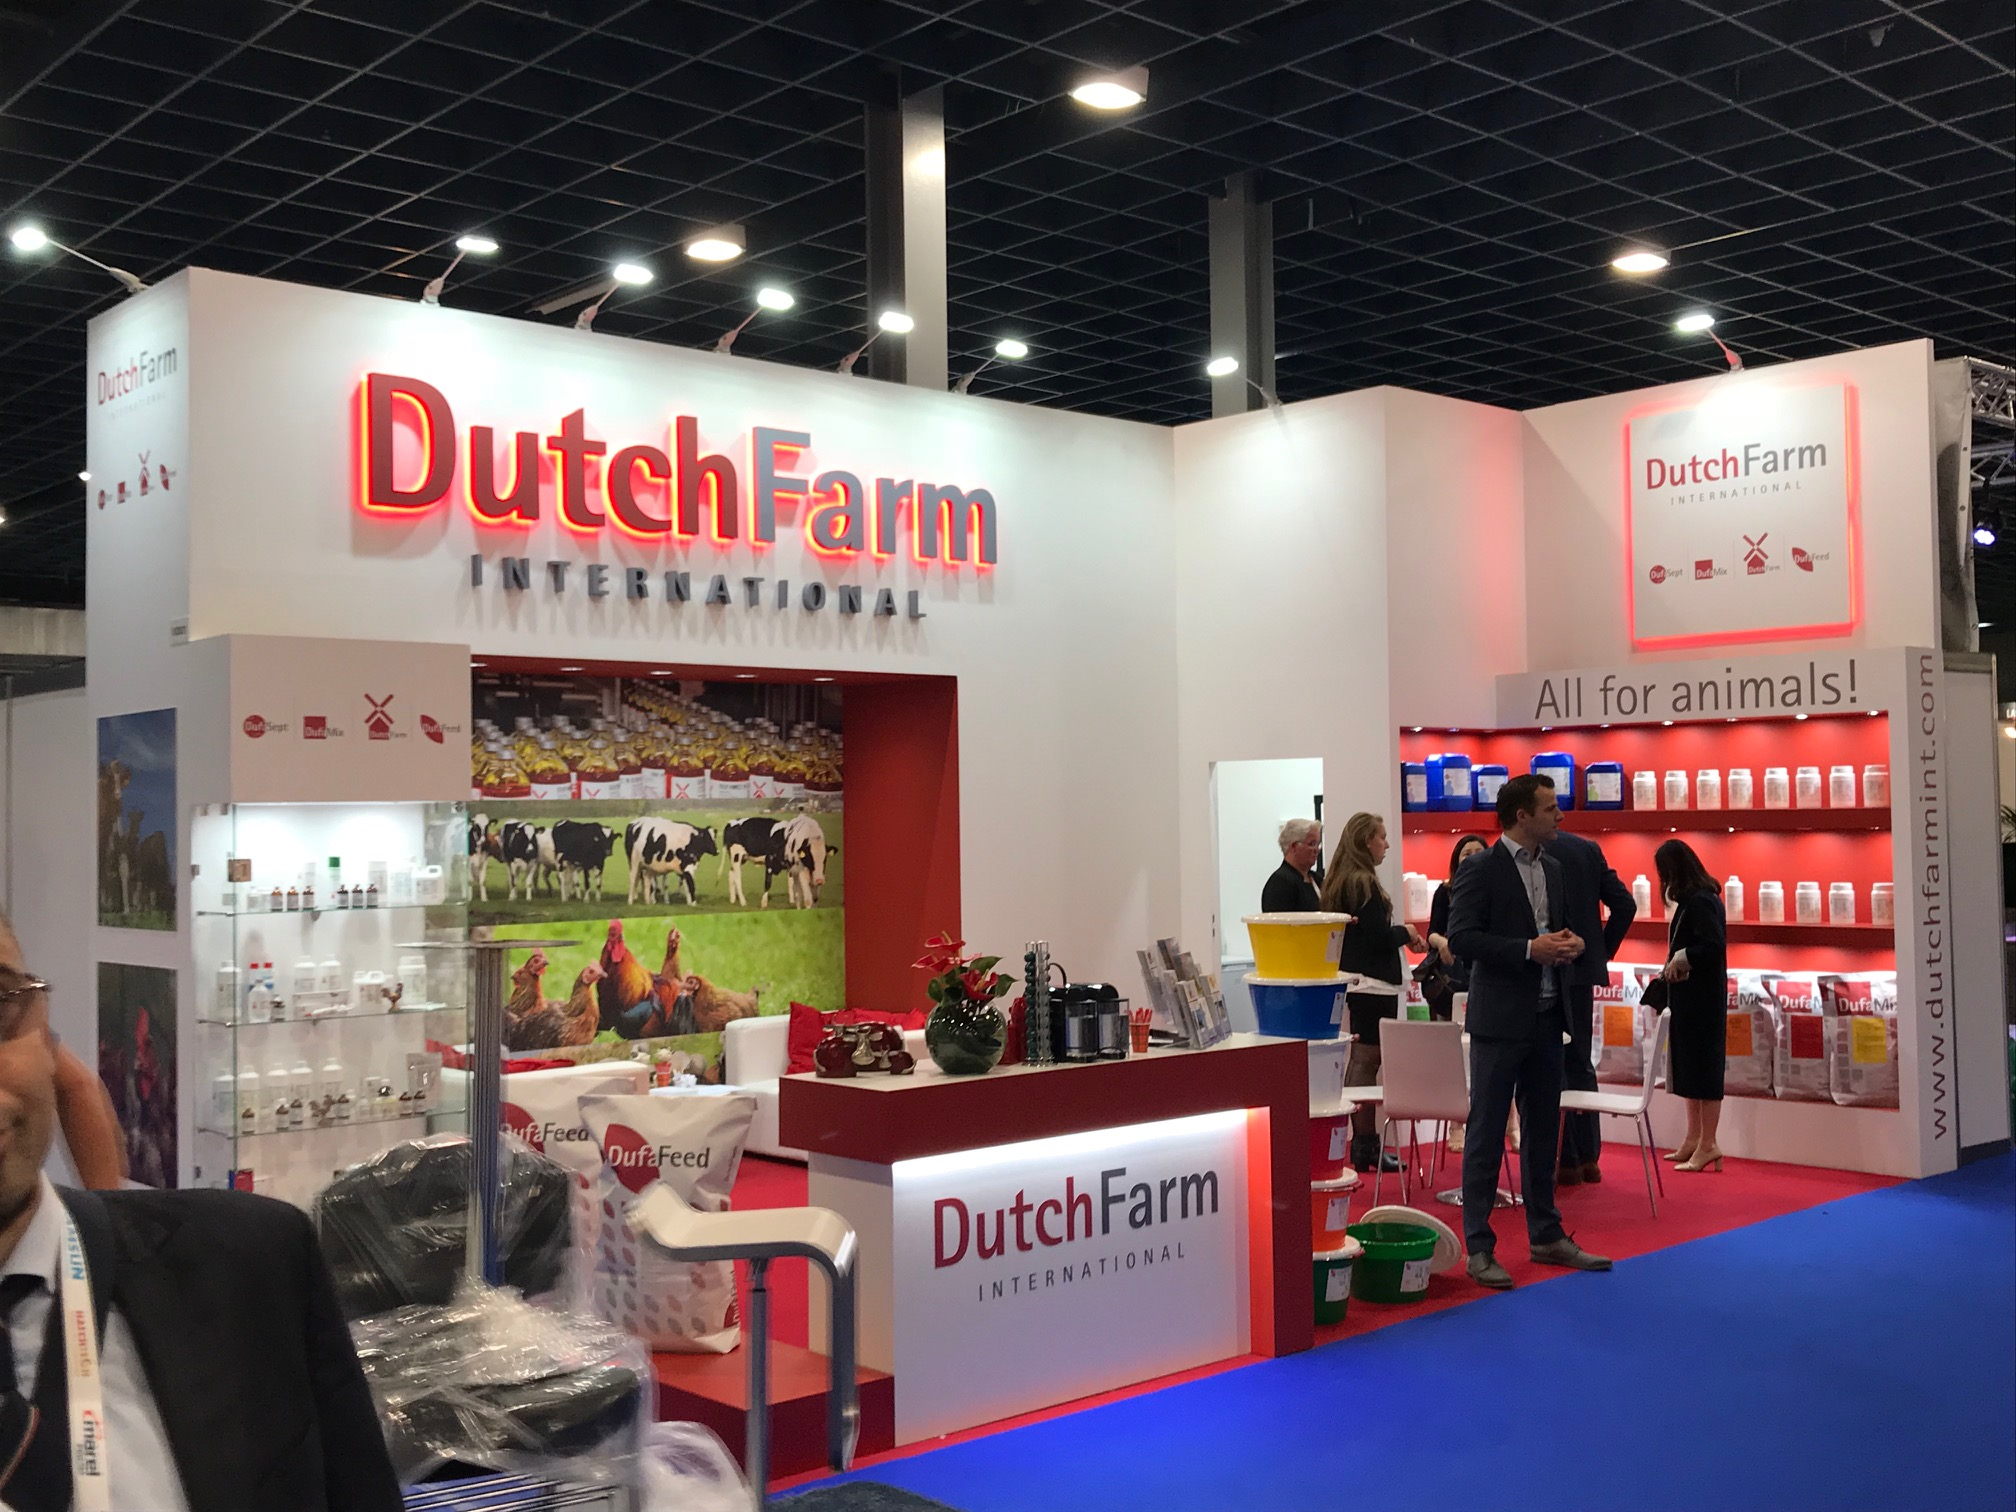 Exhibition booth design and build for Dutch Farm at VIV Europe Jaarbeurs Utrecht, The Netherlands